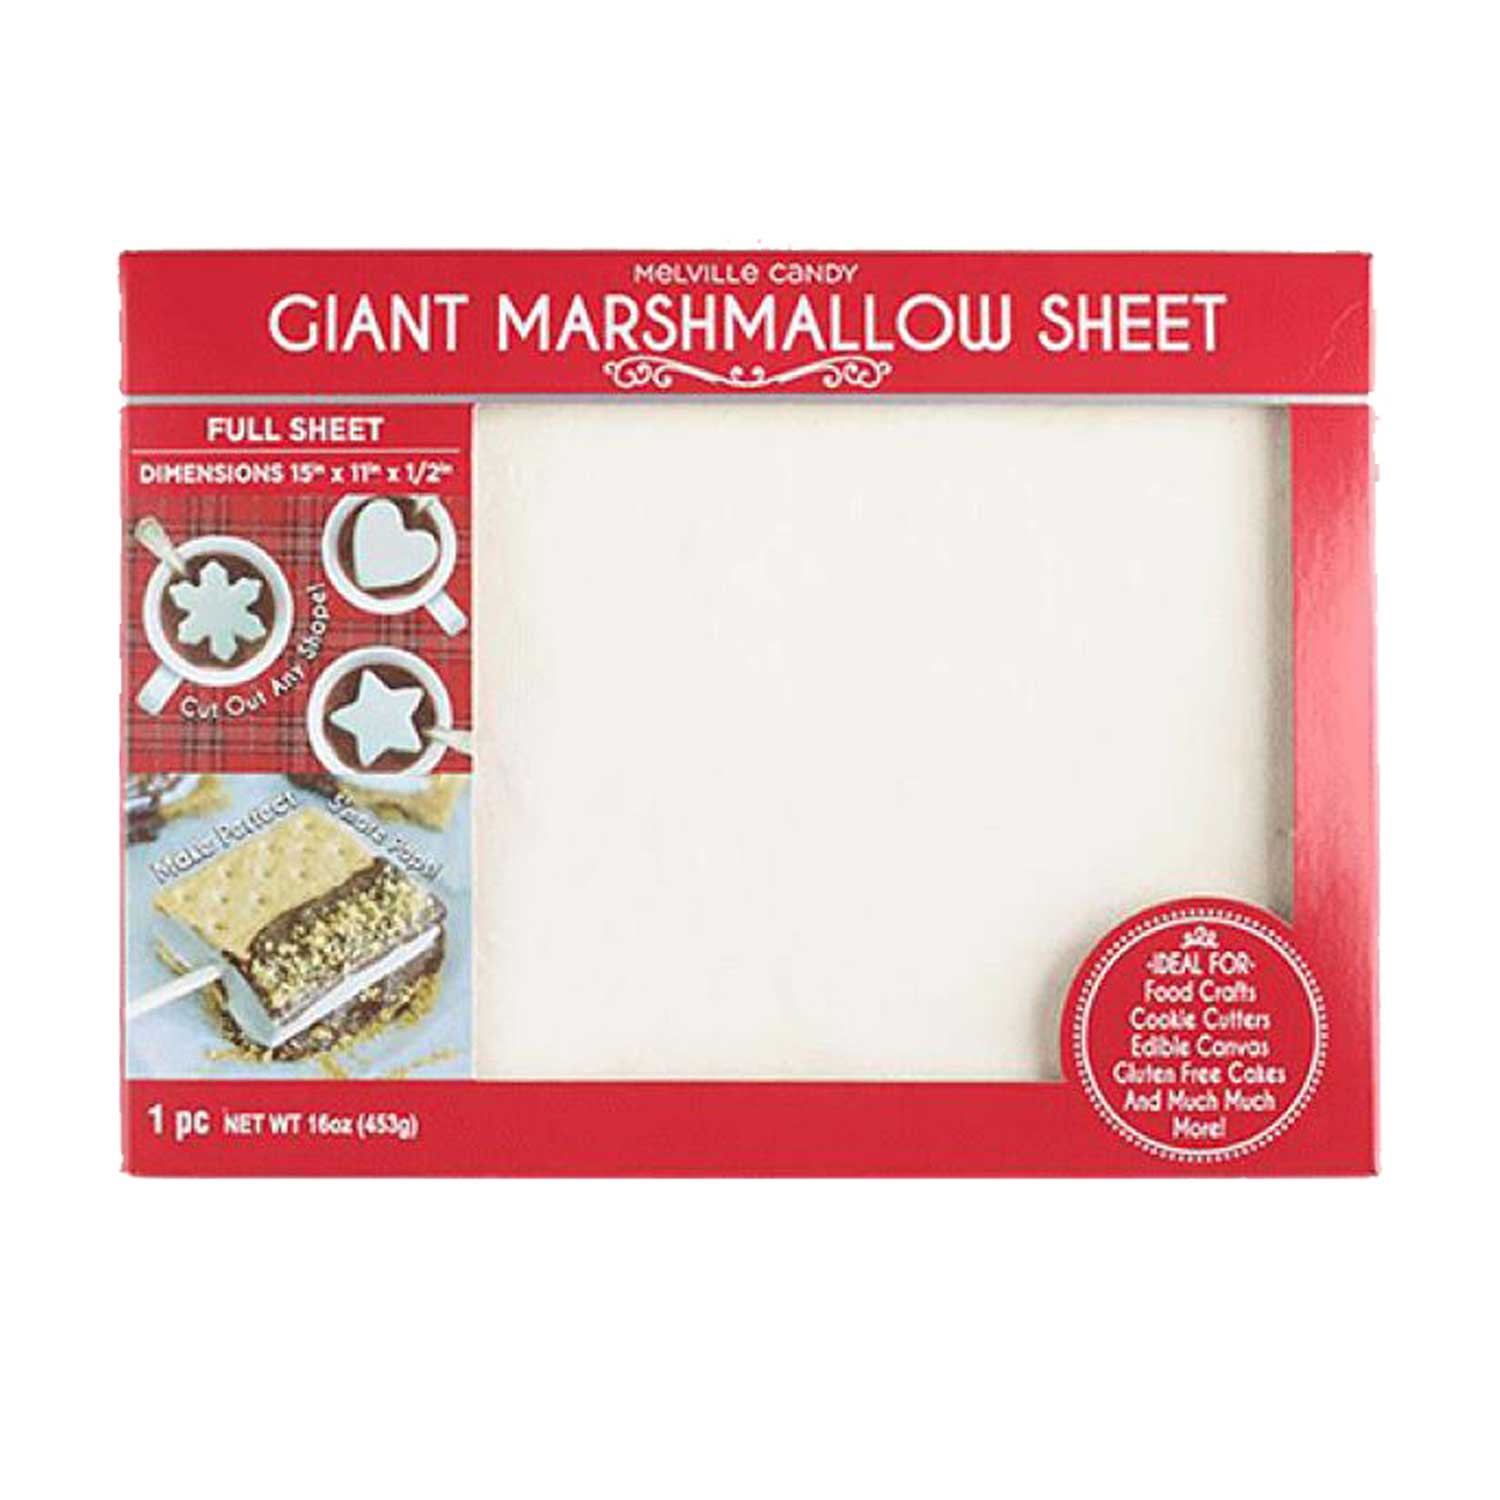 Marshmallow Sheets